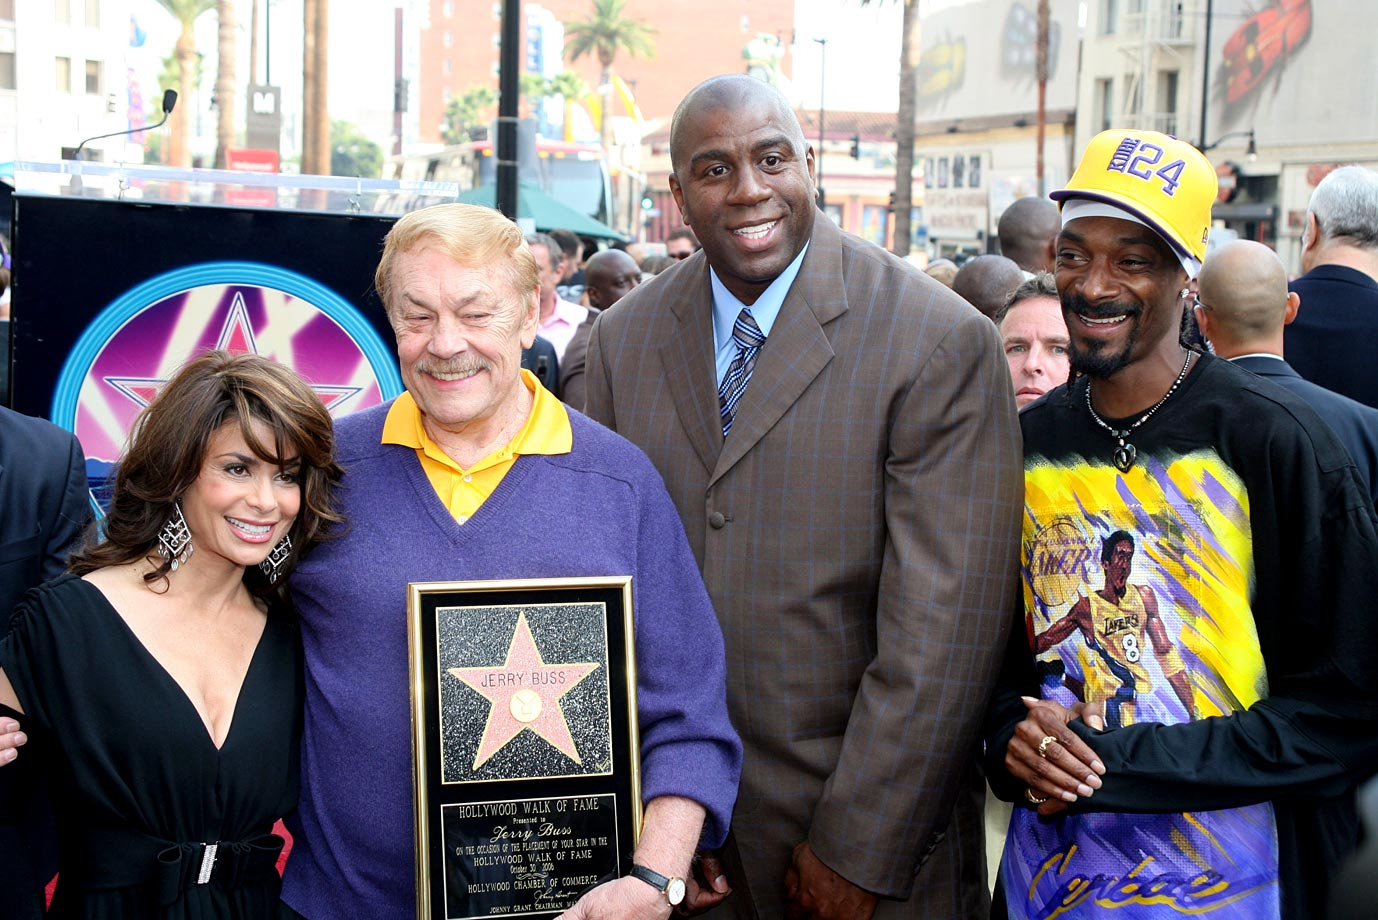 Paula Abdul, Jerry Buss, Magic Johnson and Snoop Dogg pose together after Buss received a star on the Hollywood Walk of Fame on Oct. 30, 2006 in Hollywood, Calif.